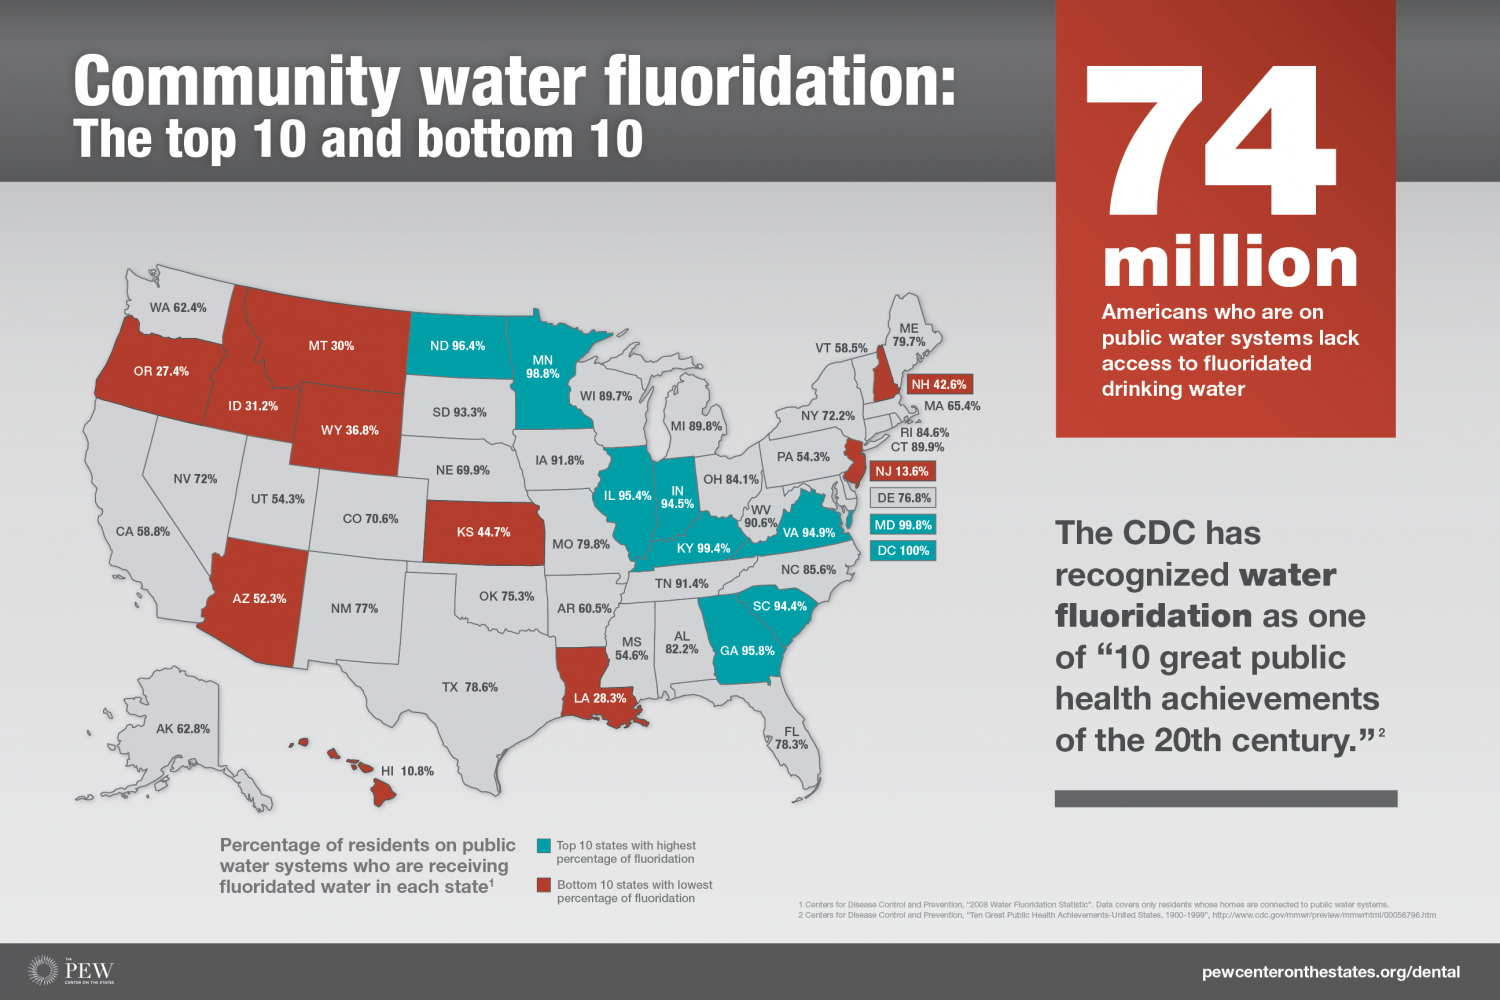 disadvantages of fluoridating public water Since 1945, municipal agencies in the us have added sodium fluoride to public water in an attempt to improve oral health while the american dental association and other health agencies endorse fluoridation, fluoride levels must be monitored carefully to avoid potential negative health effects.